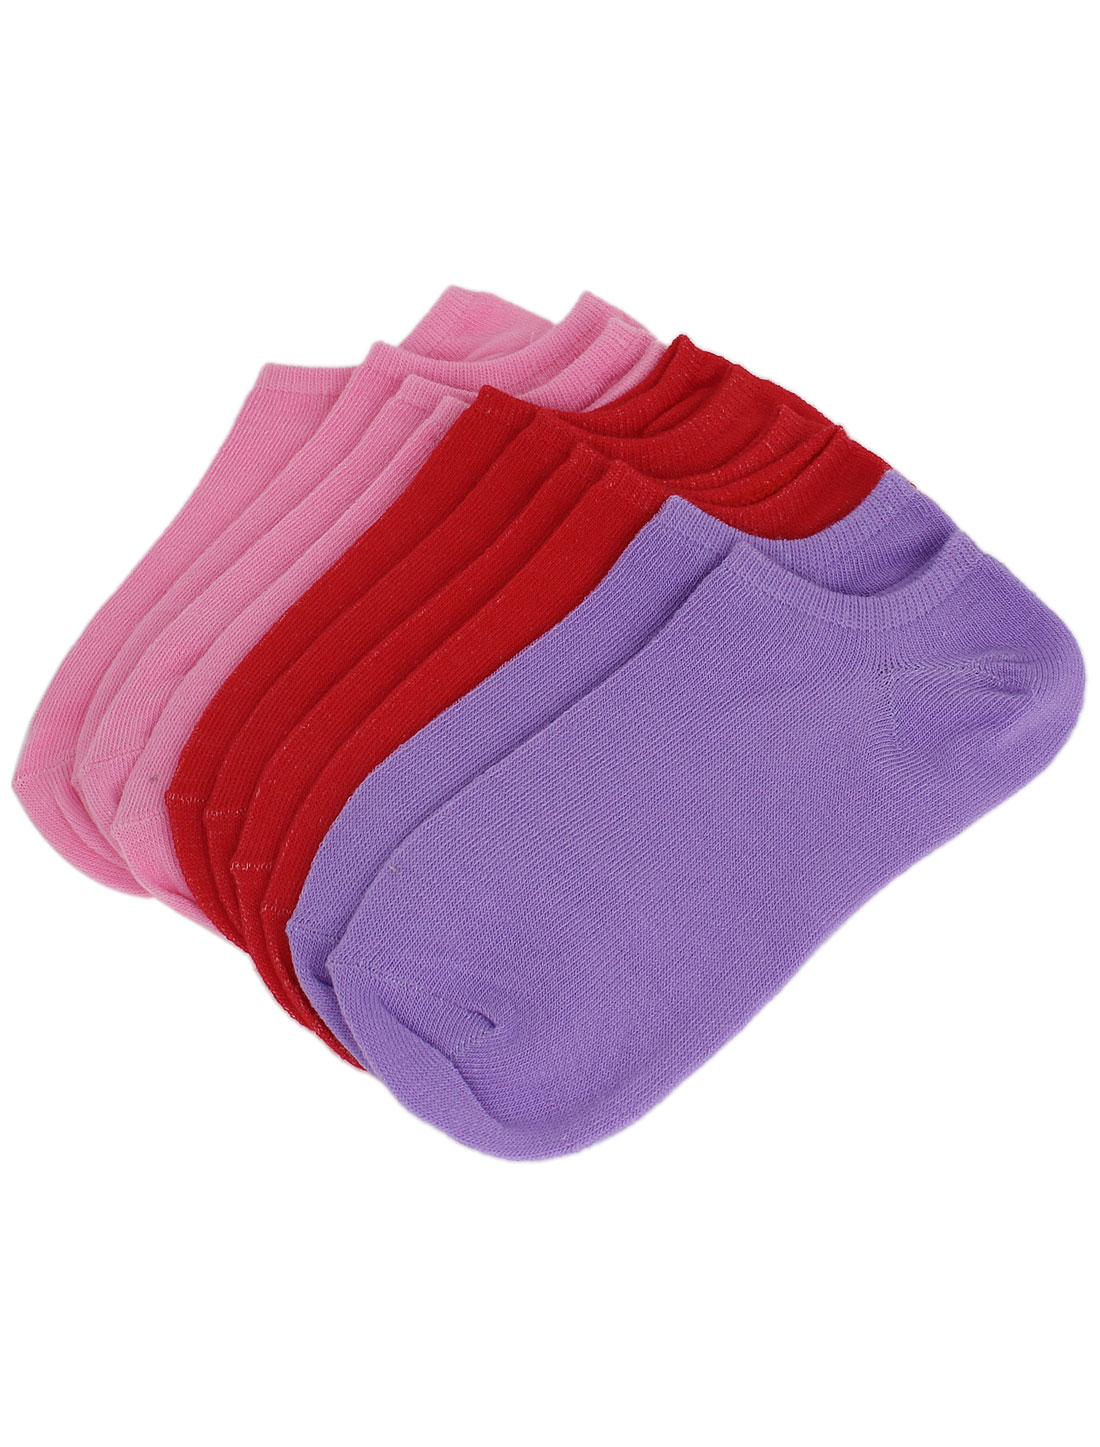 Lady Cotton Blends Elastic Low Cut Sports Ankle Socks Assorted Colors 5 Pairs